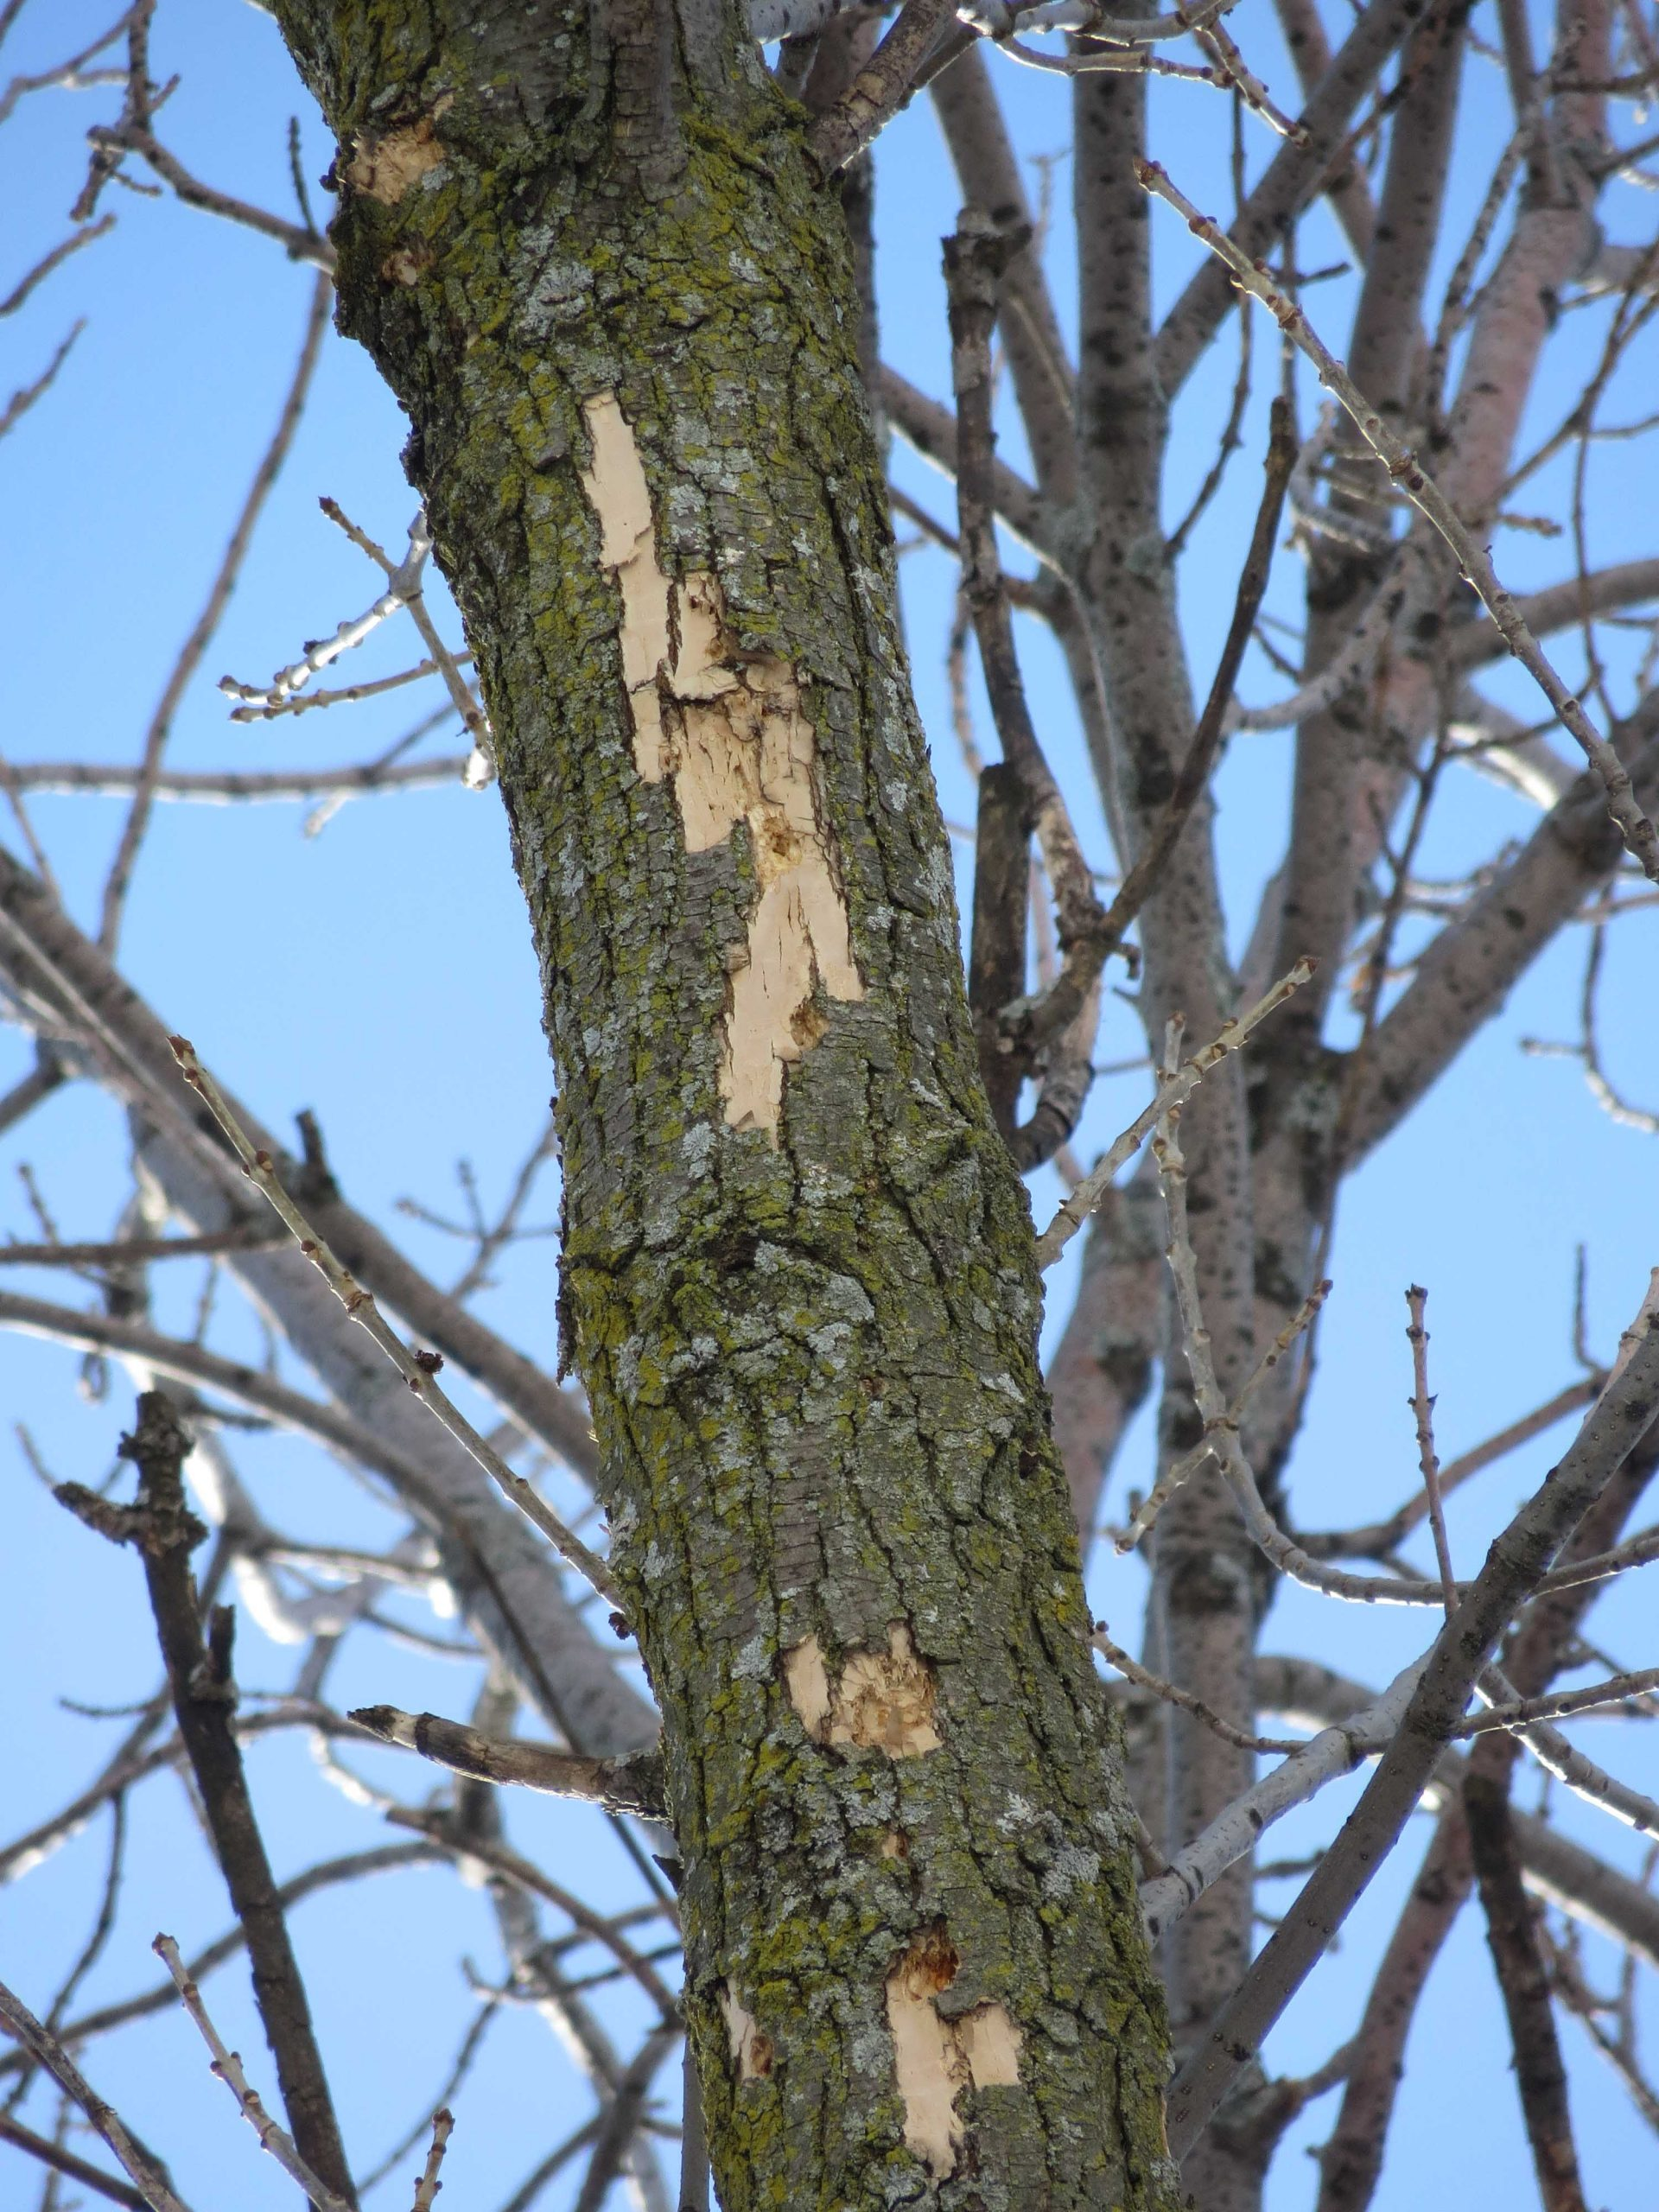 An ash tree branch with bark missing after woodpeckers attacked it while looking for larvae to eat.